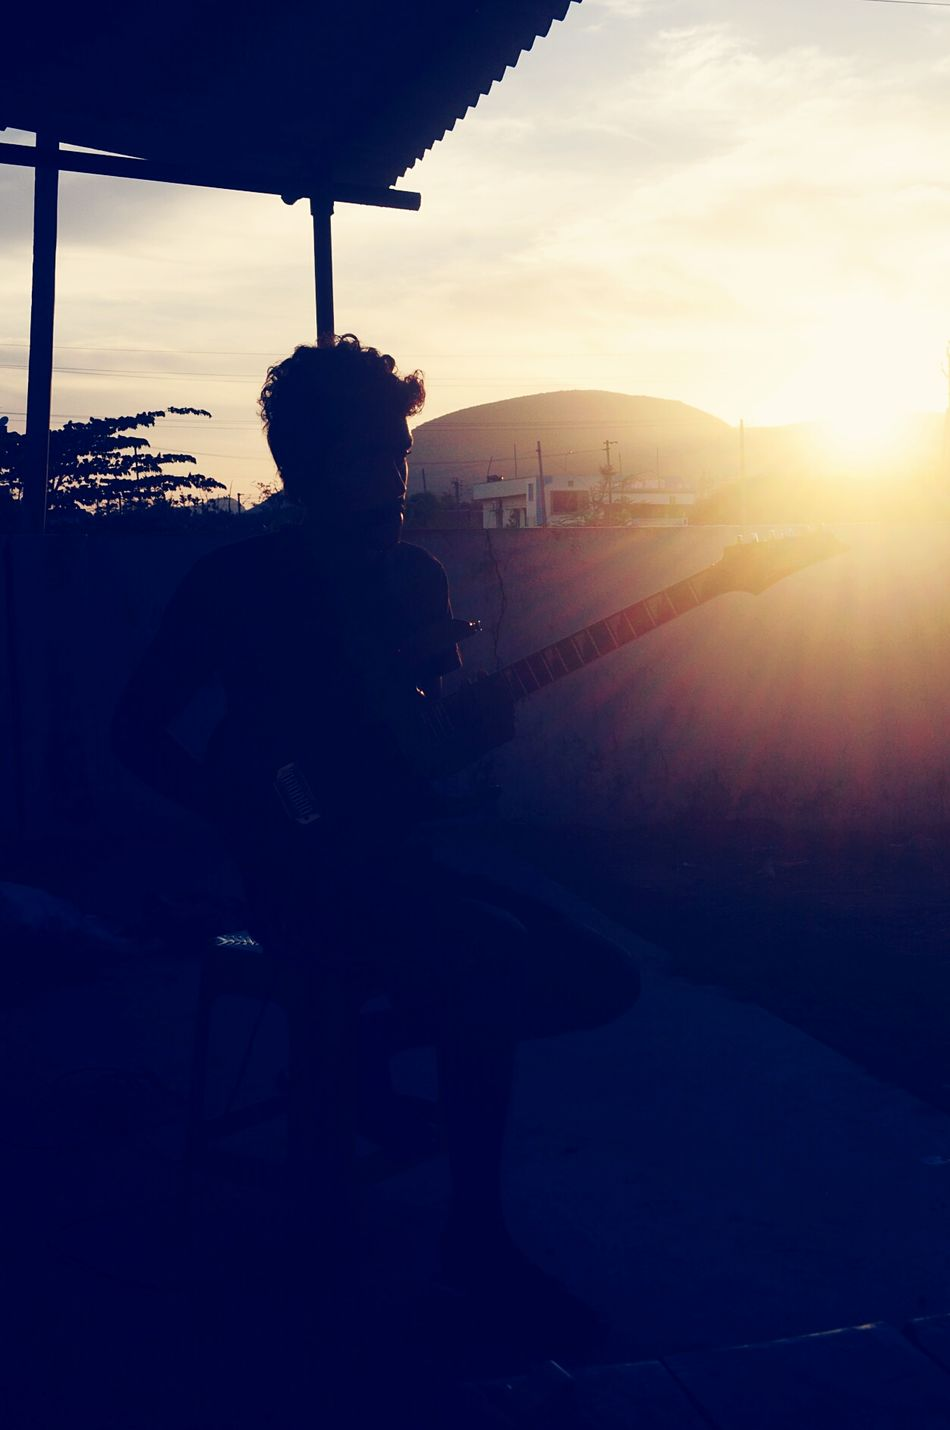 Guitarmoods Guitarhero Guitar Time Sunset Silhouettes Silhoutteshadows 🌇 Feeling Thankful Feelinggreat Sounds Of The Silhottes🌇🎶🎸